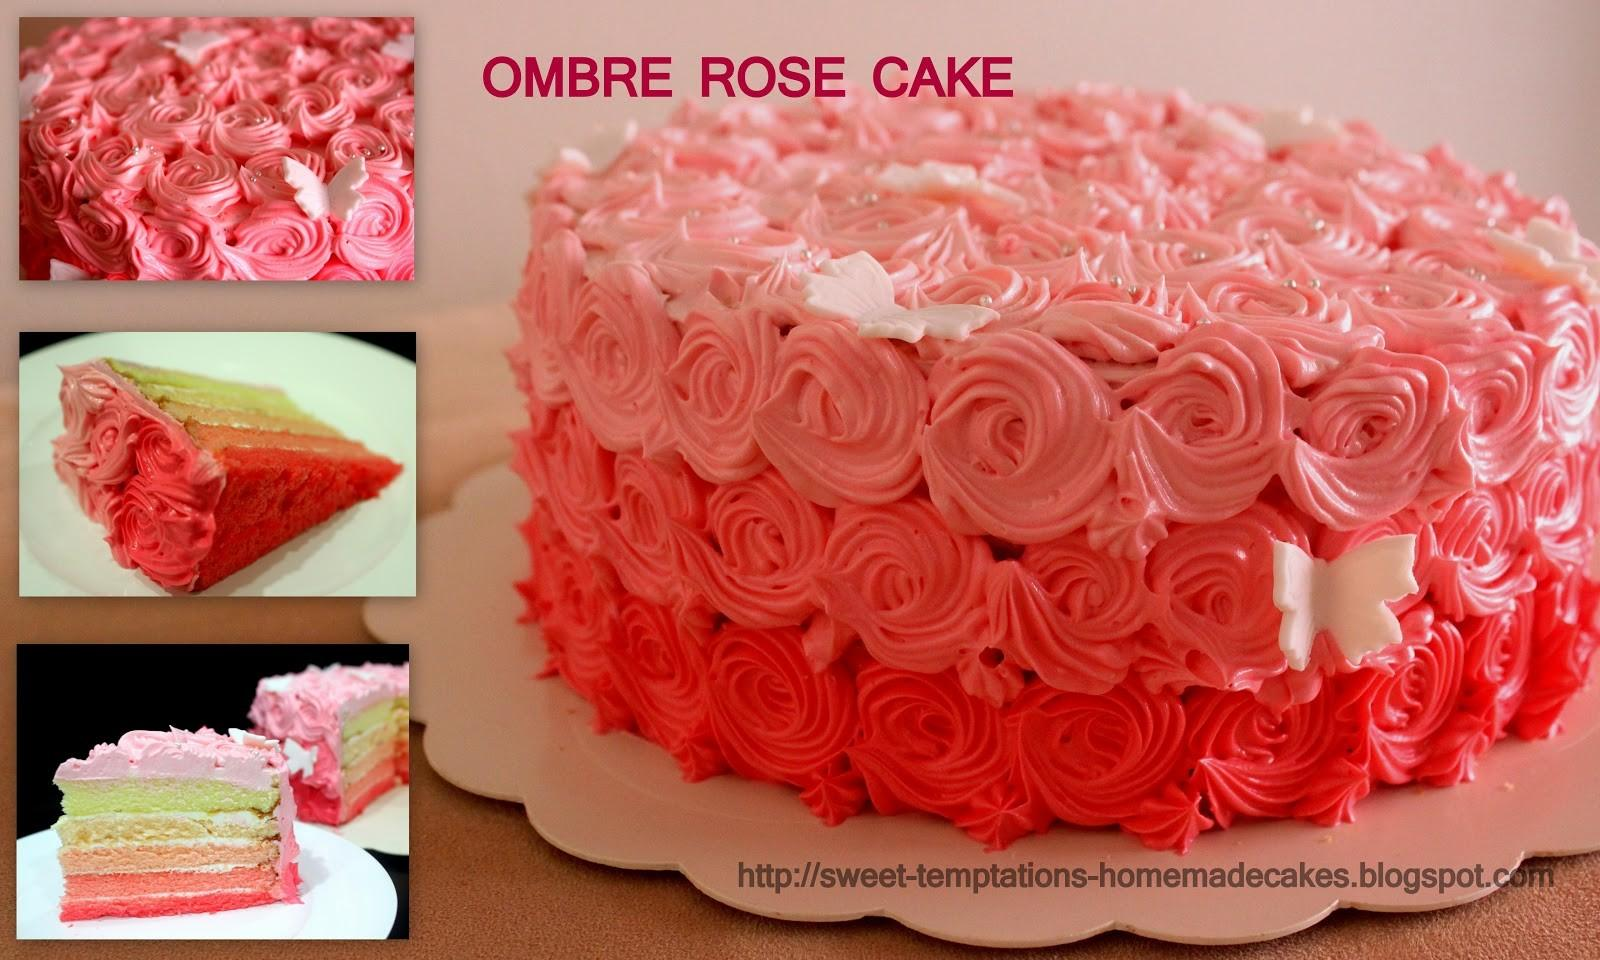 Sweet Temptations Homemade Cakes Pastry Ombre Rose Cake